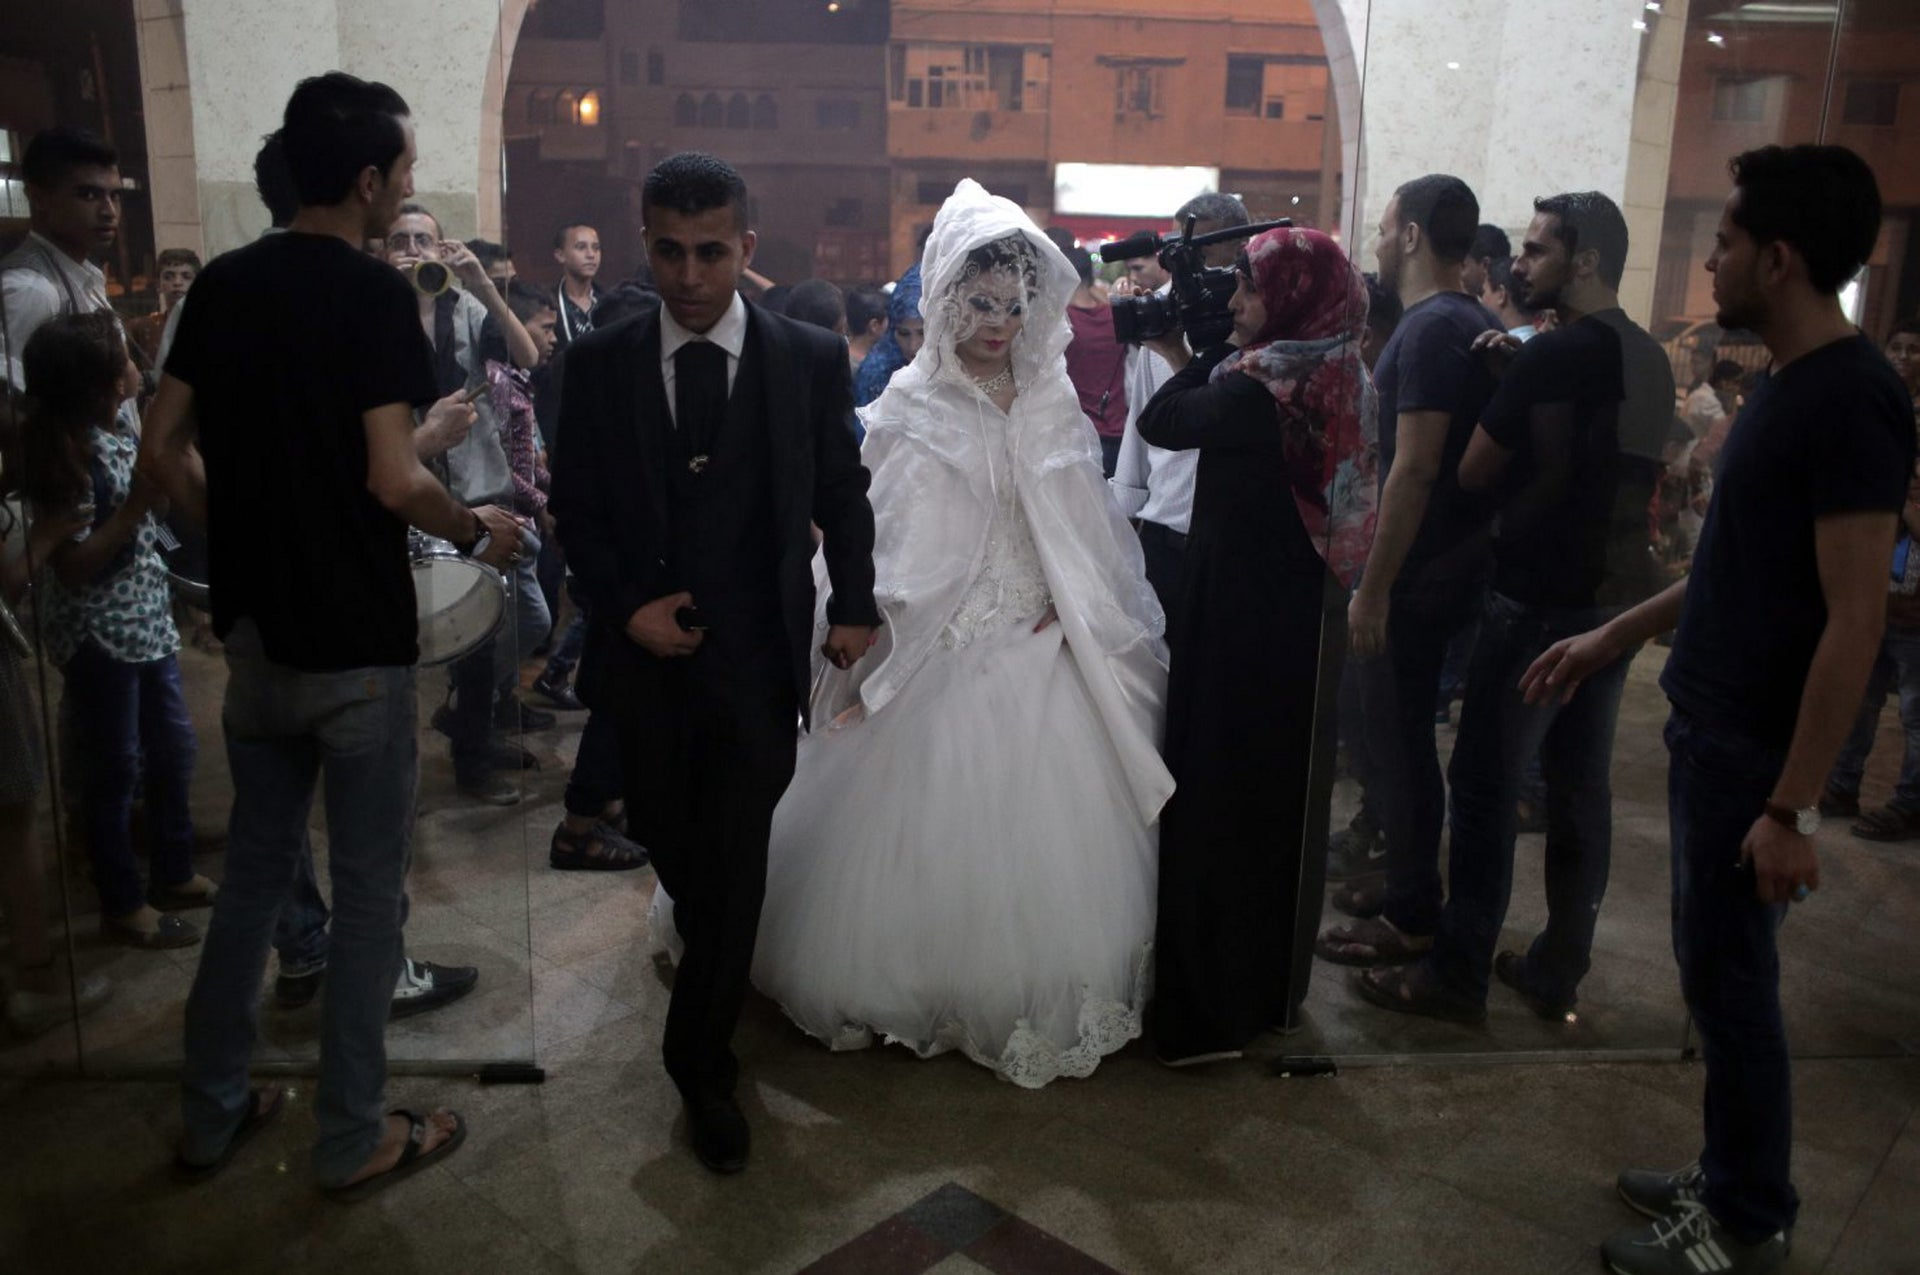 In this Saturday, July 30, 2016 photo, Palestinian groom Saed Abu Aser, and his bride, Falasteen, walk into the wedding hall, in Gaza City.